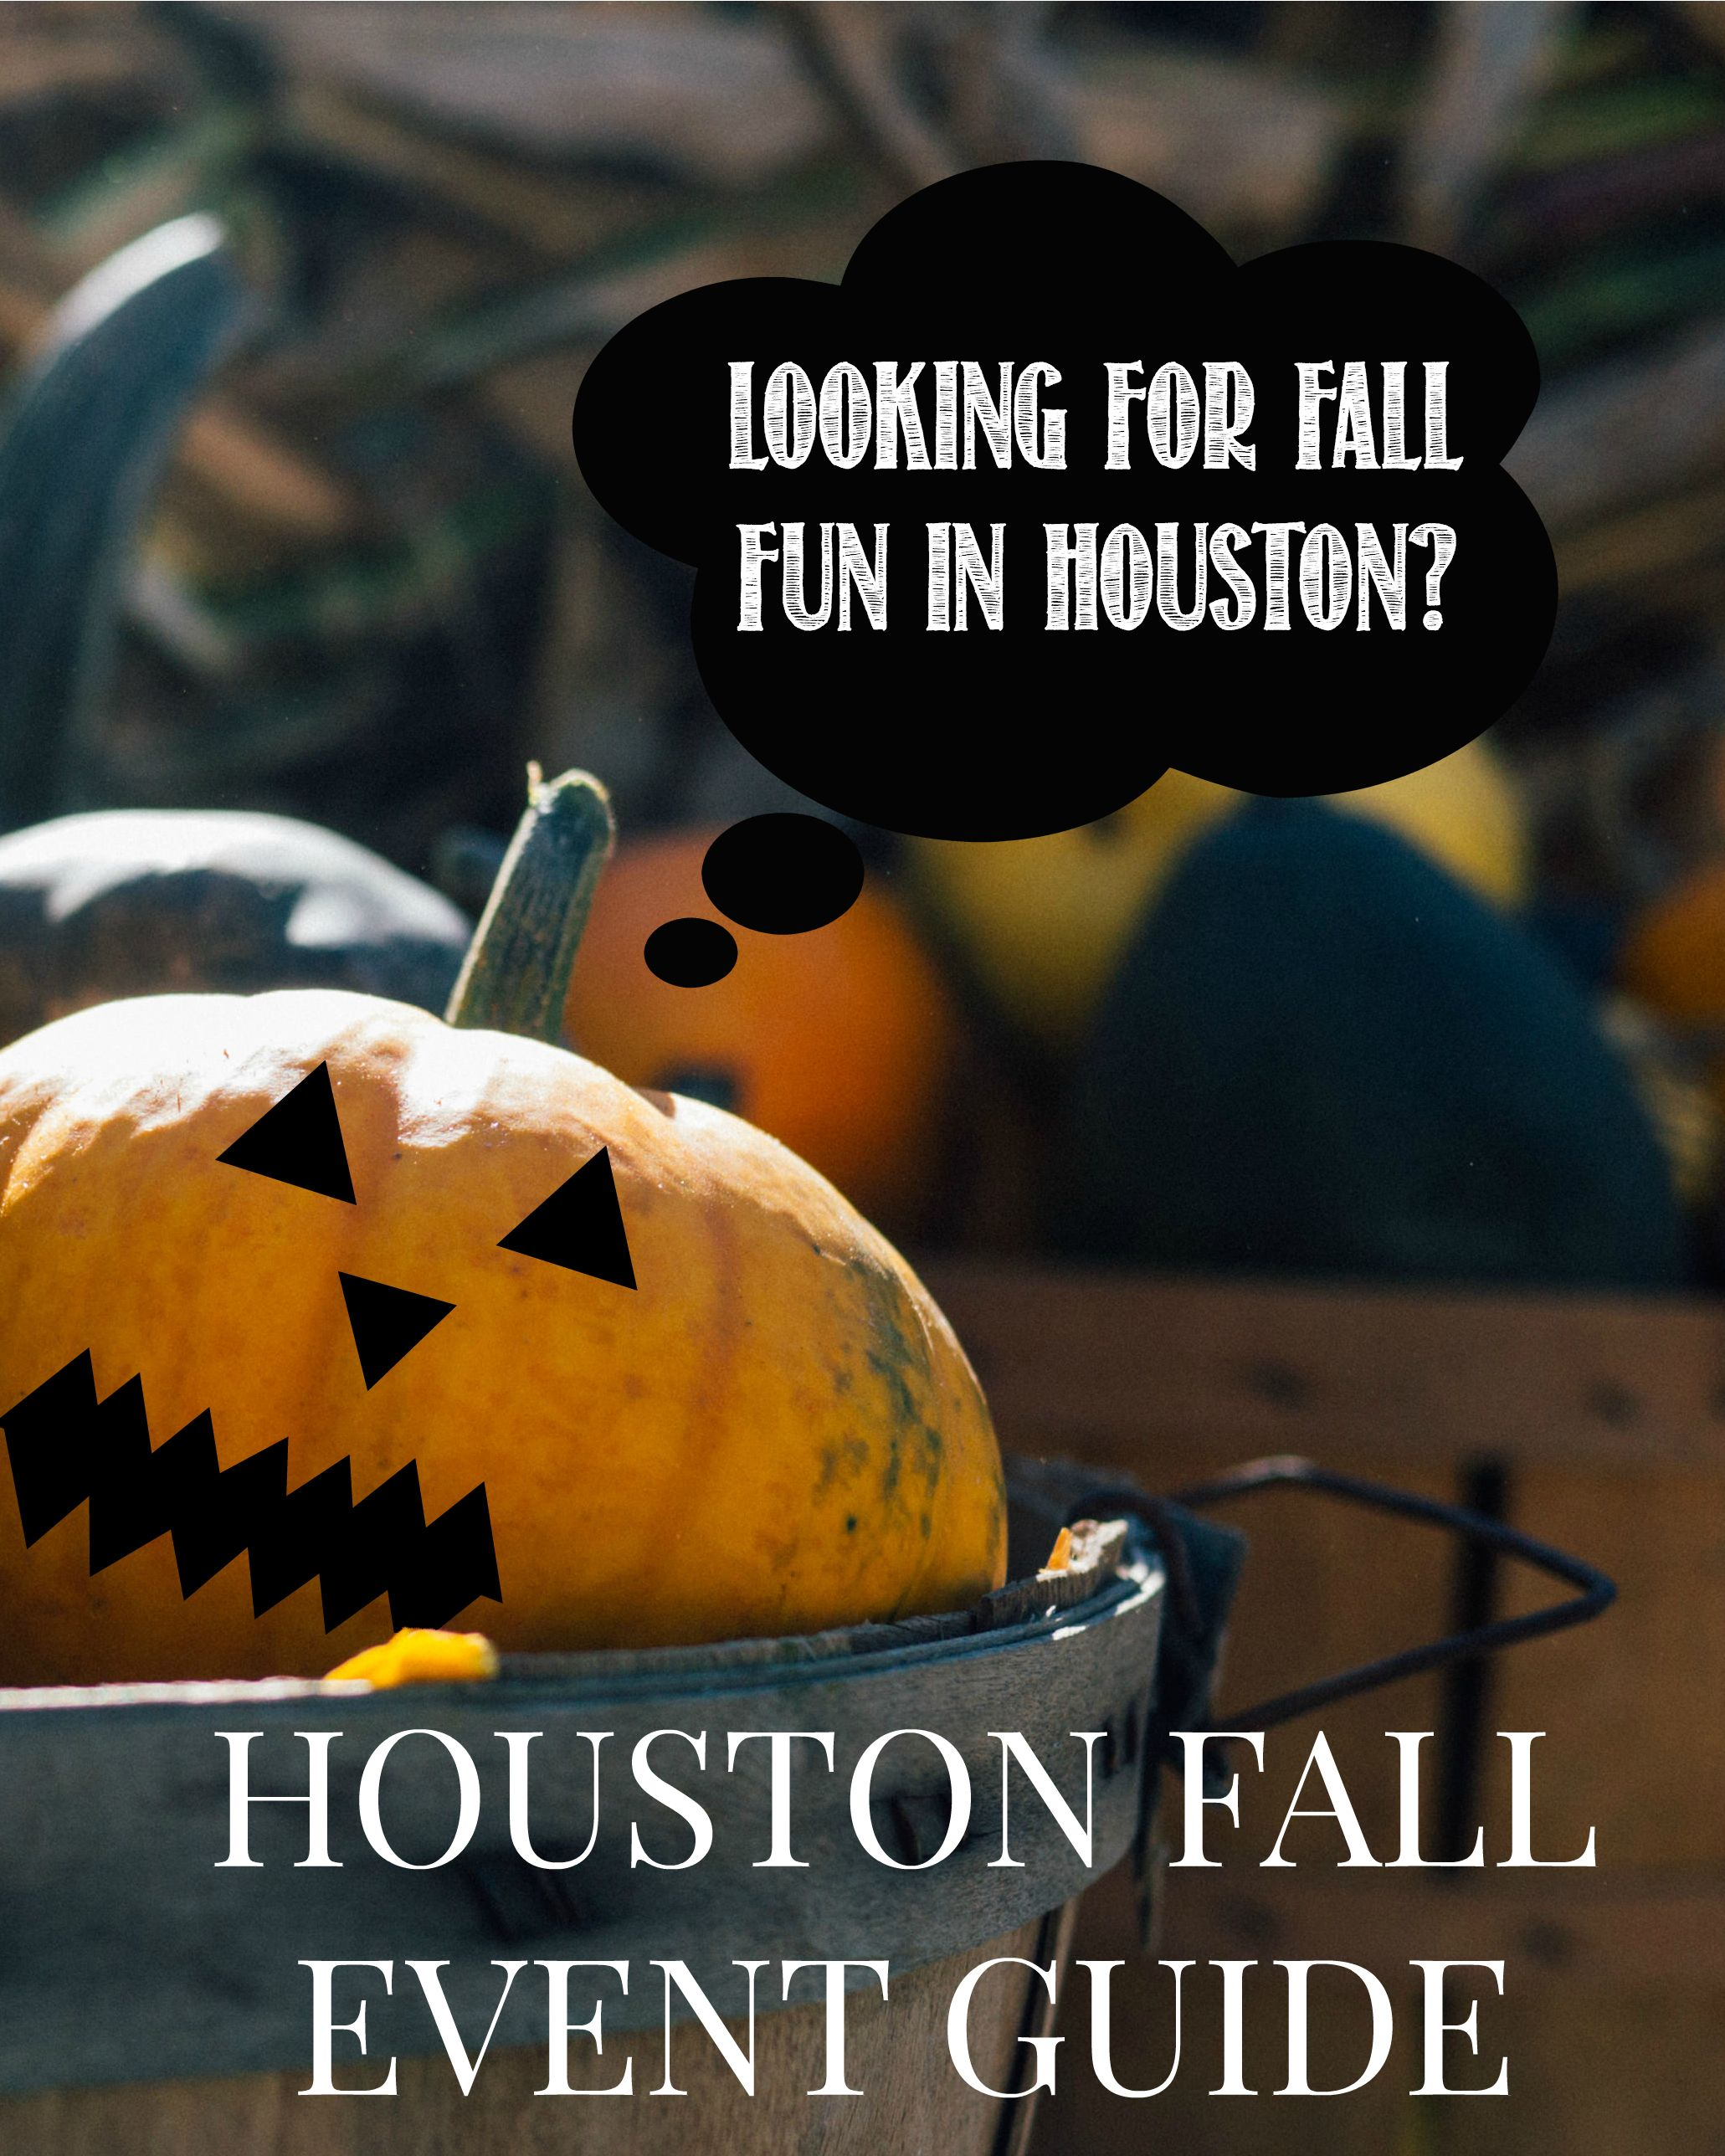 Halloween Festivals Houston | Things To Do In Houston Fall 2016 Pinterest Event Guide City